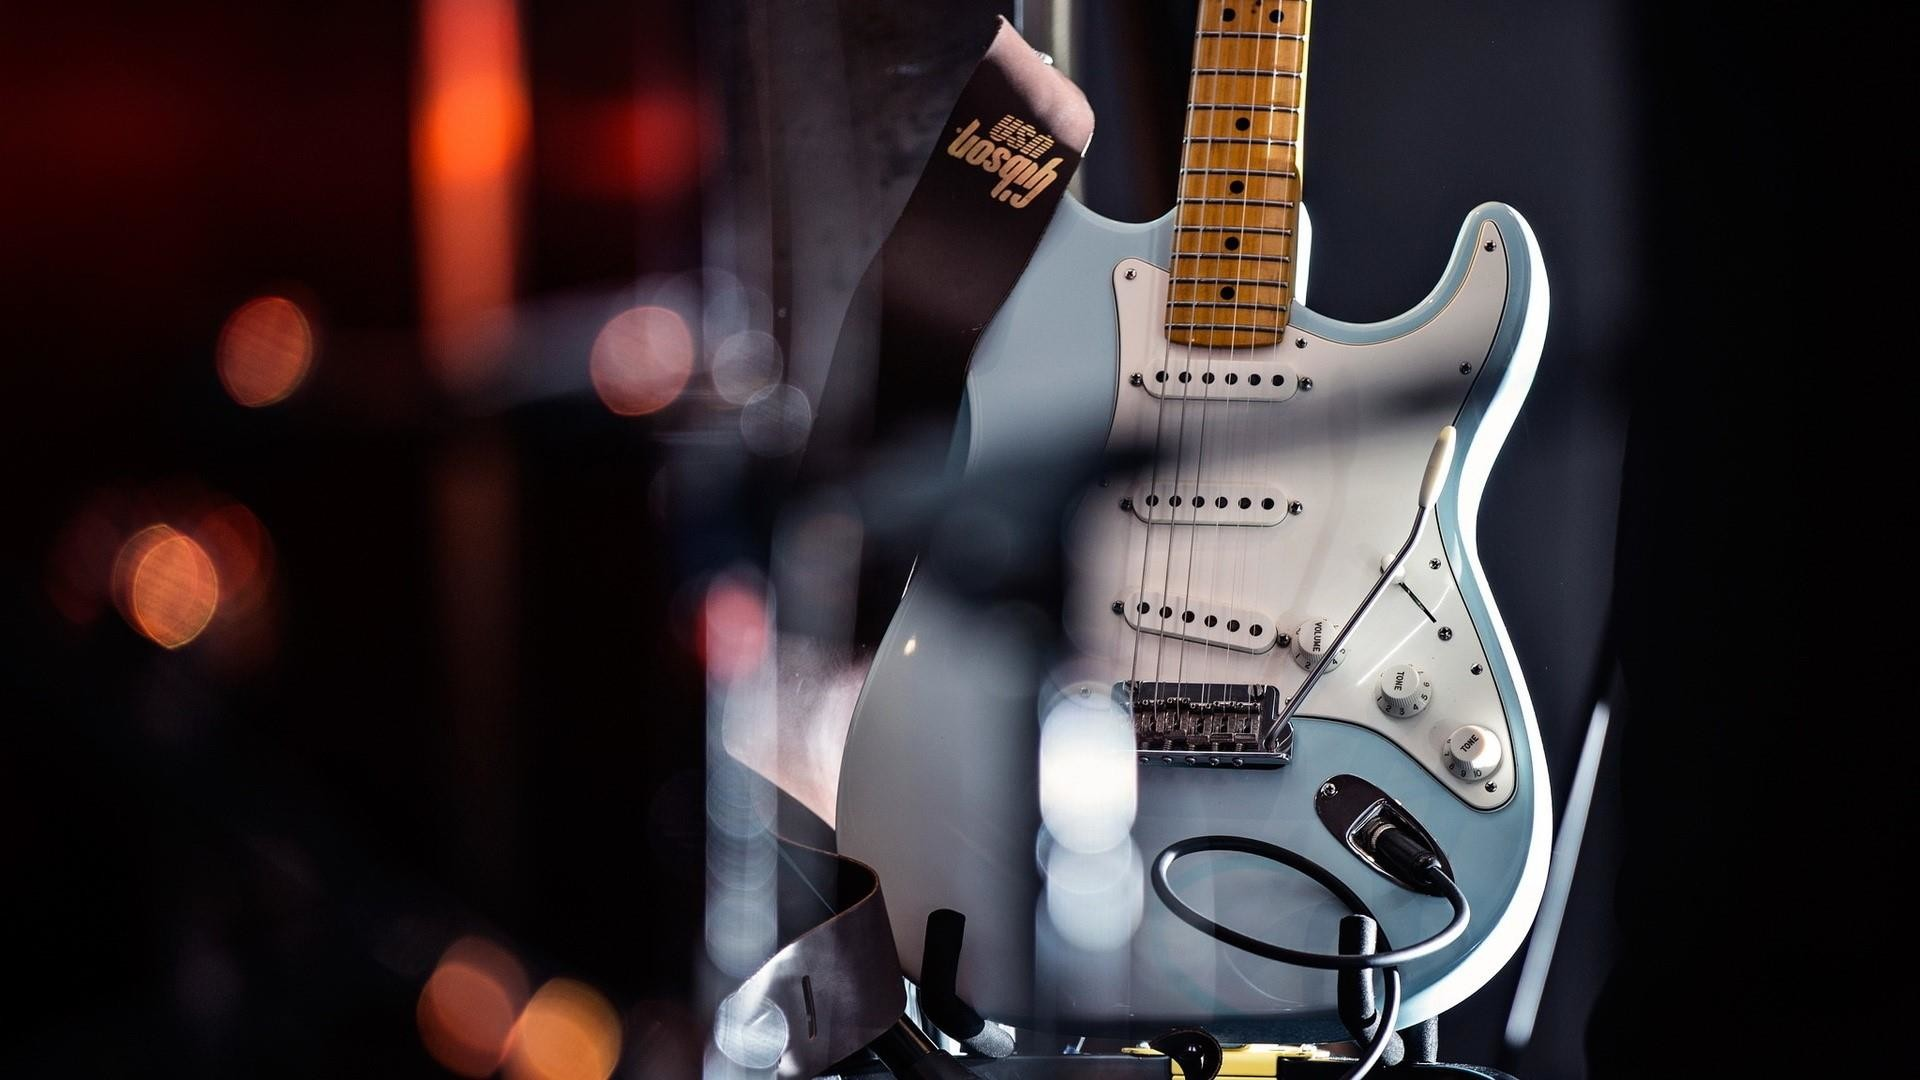 Wallbase Hd Wallpapers Pro Fender Stratocaster Wallpaper 52 Images